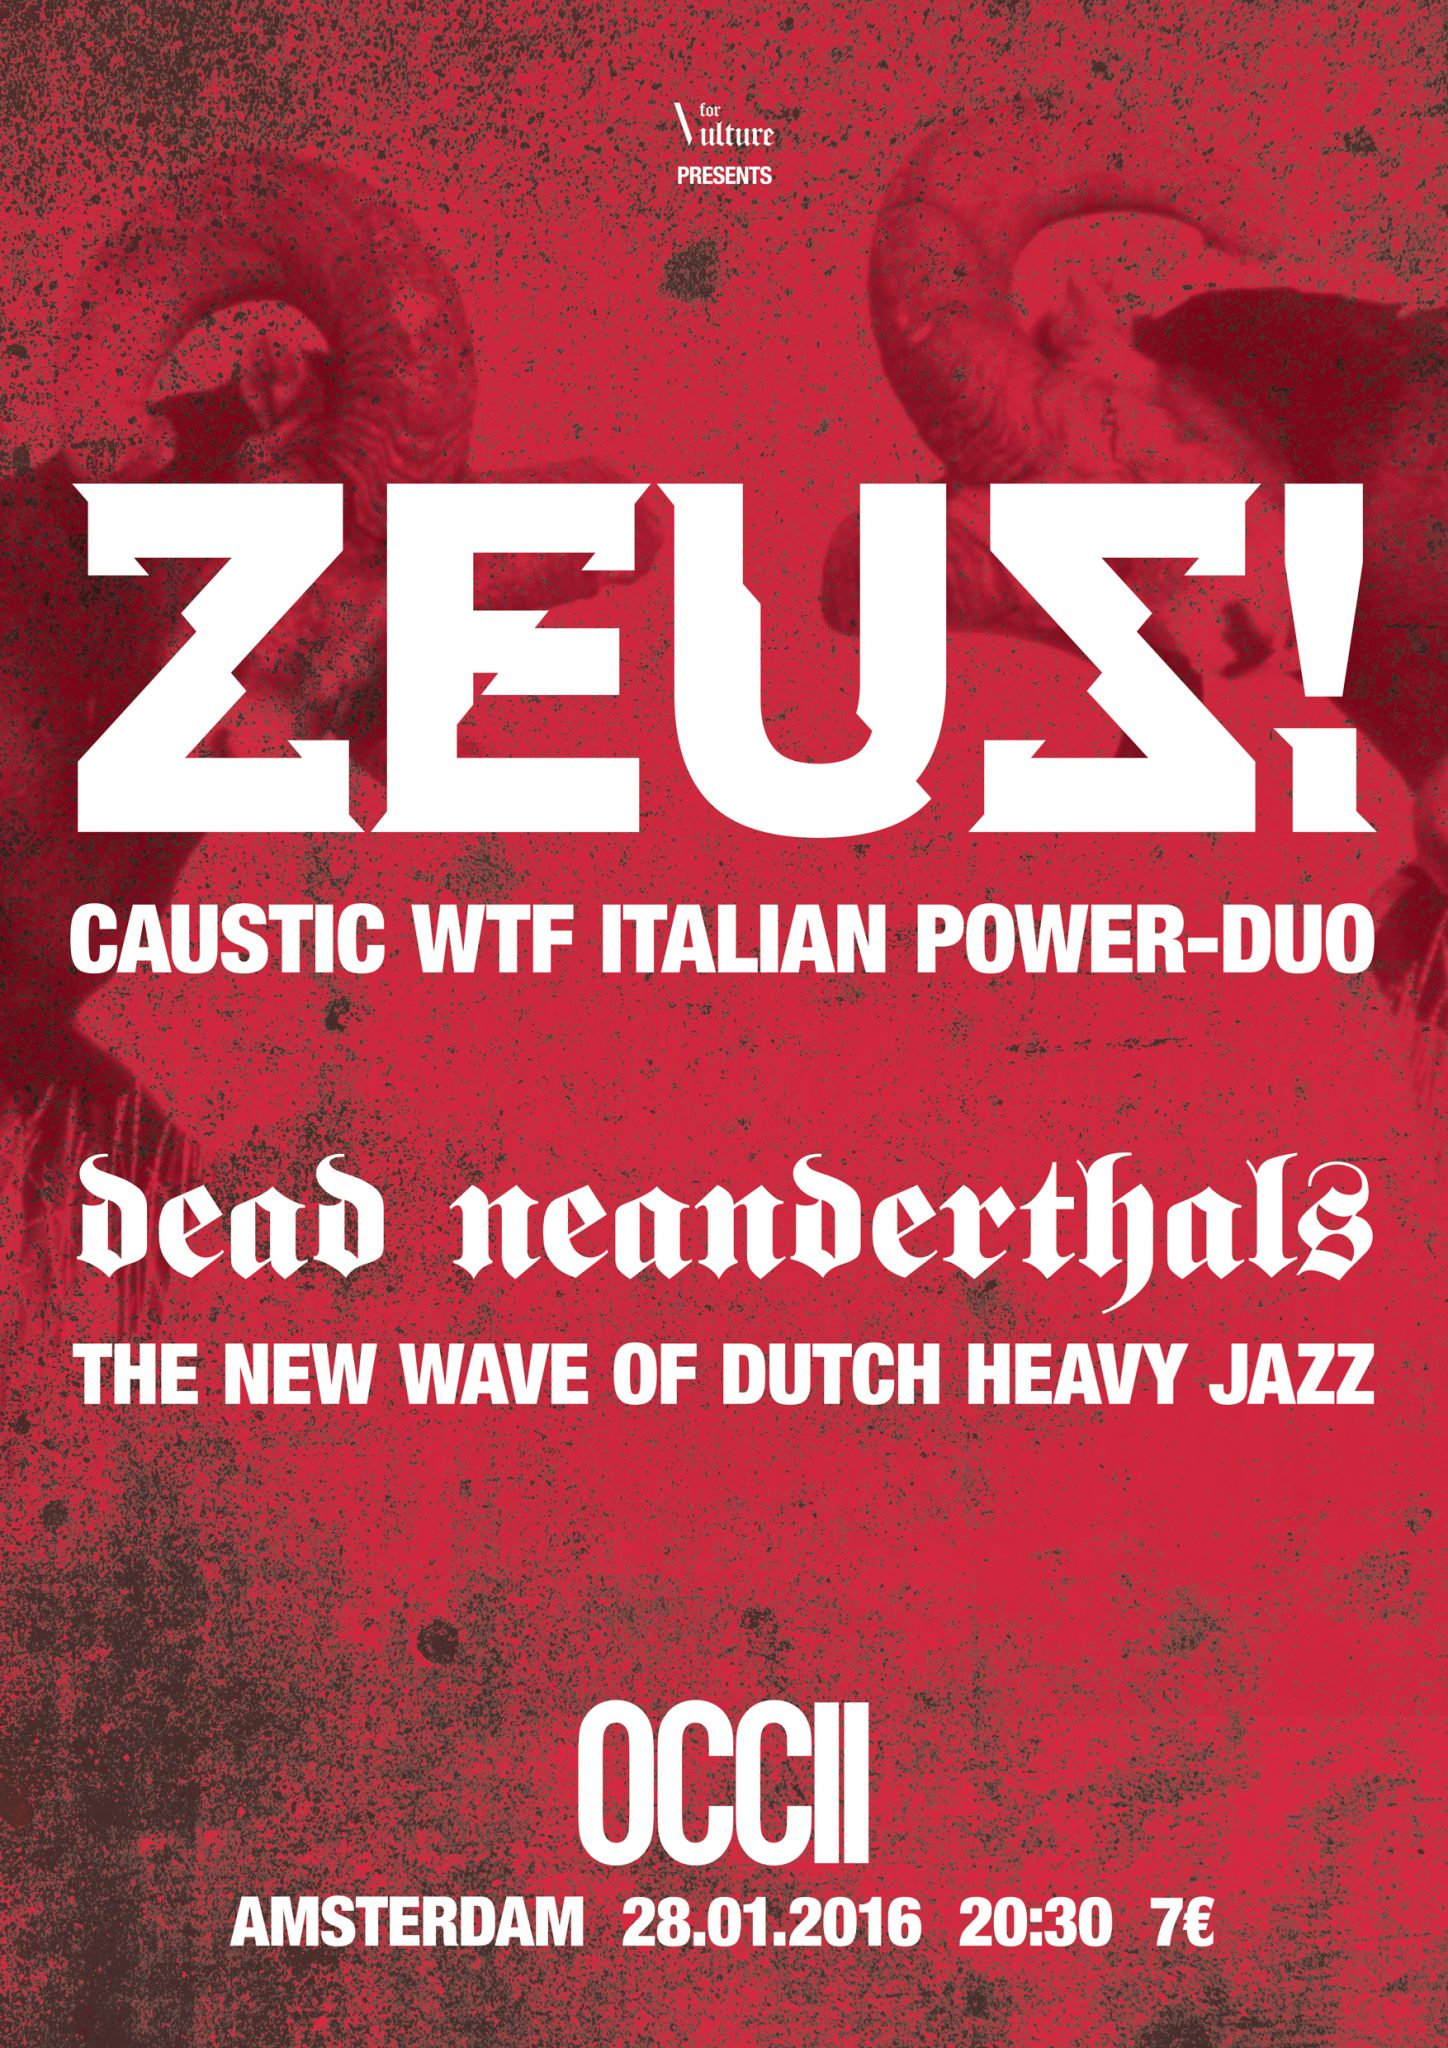 ZEUS (it) + DEAD NEANDERTHALS